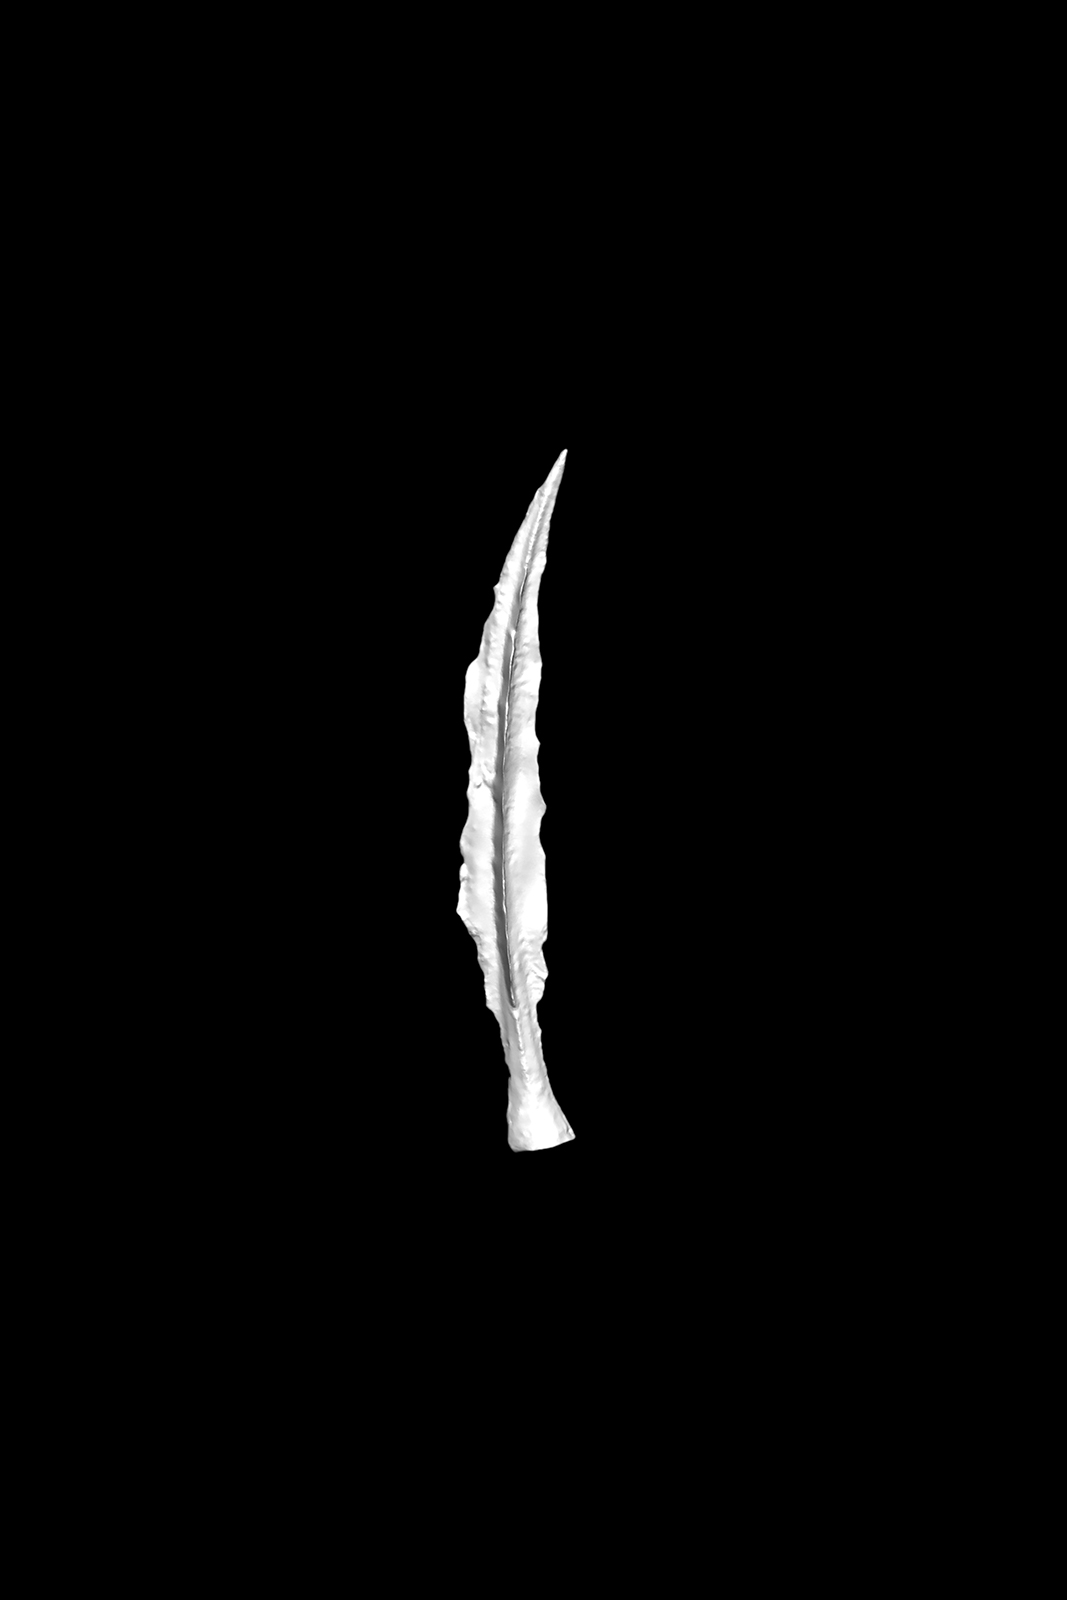 Paul Geelen - Untitled (Love Dart), 2017 - 2018 (Microscan).